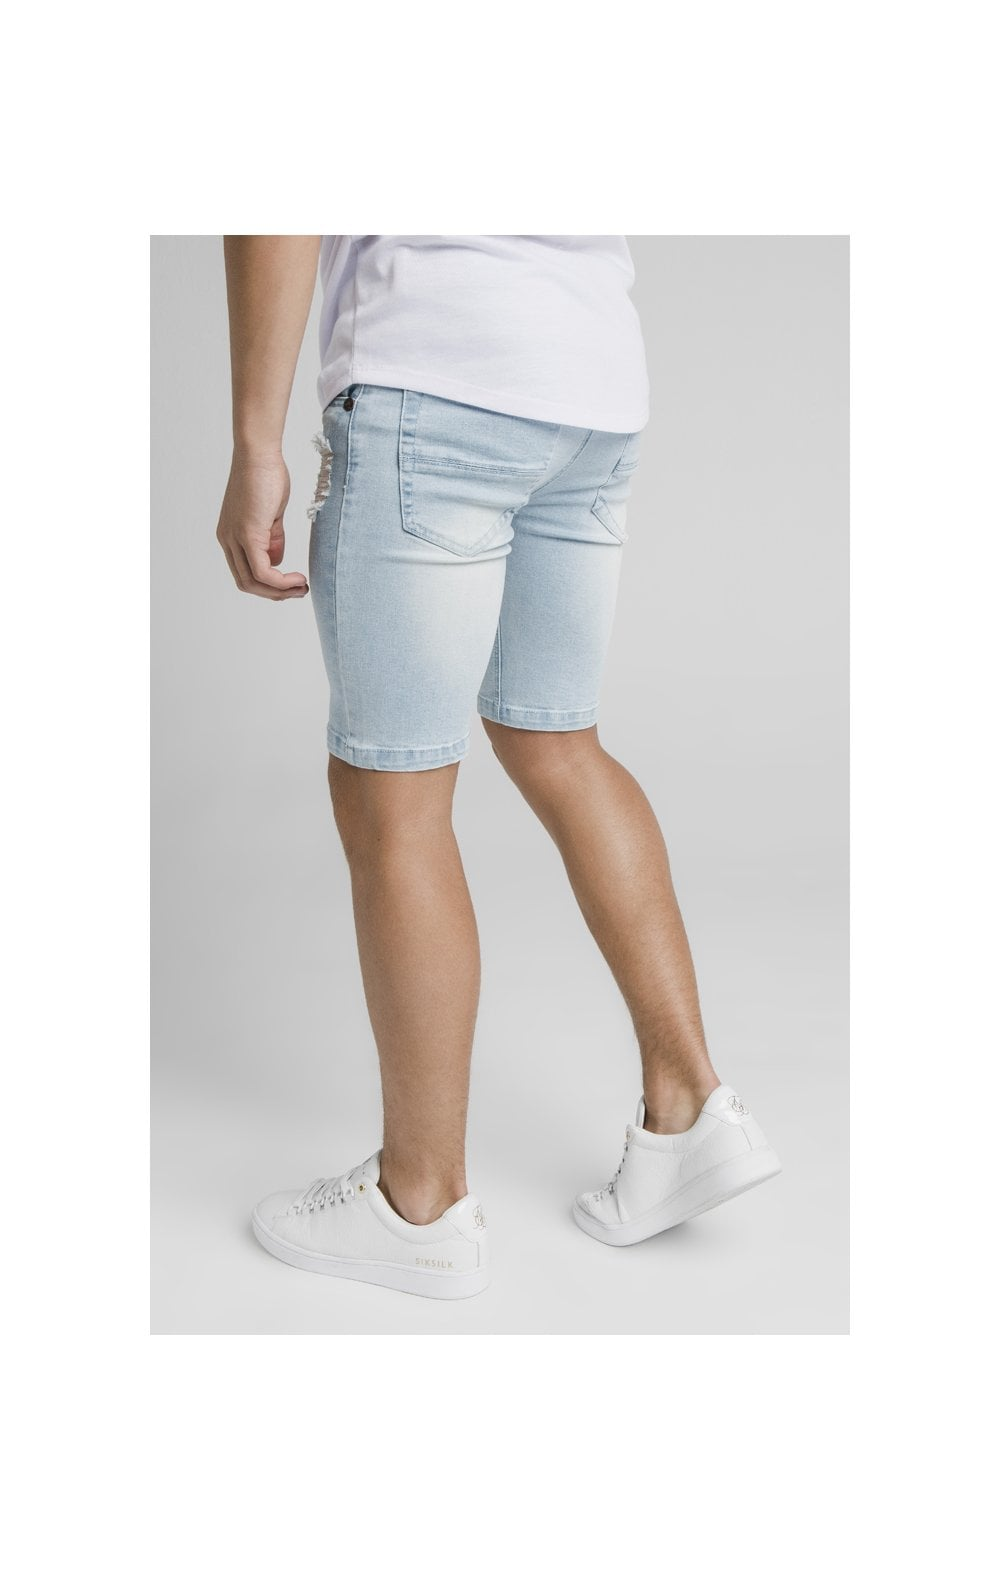 Illusive London Distressed Denim Shorts - Light Blue (2)